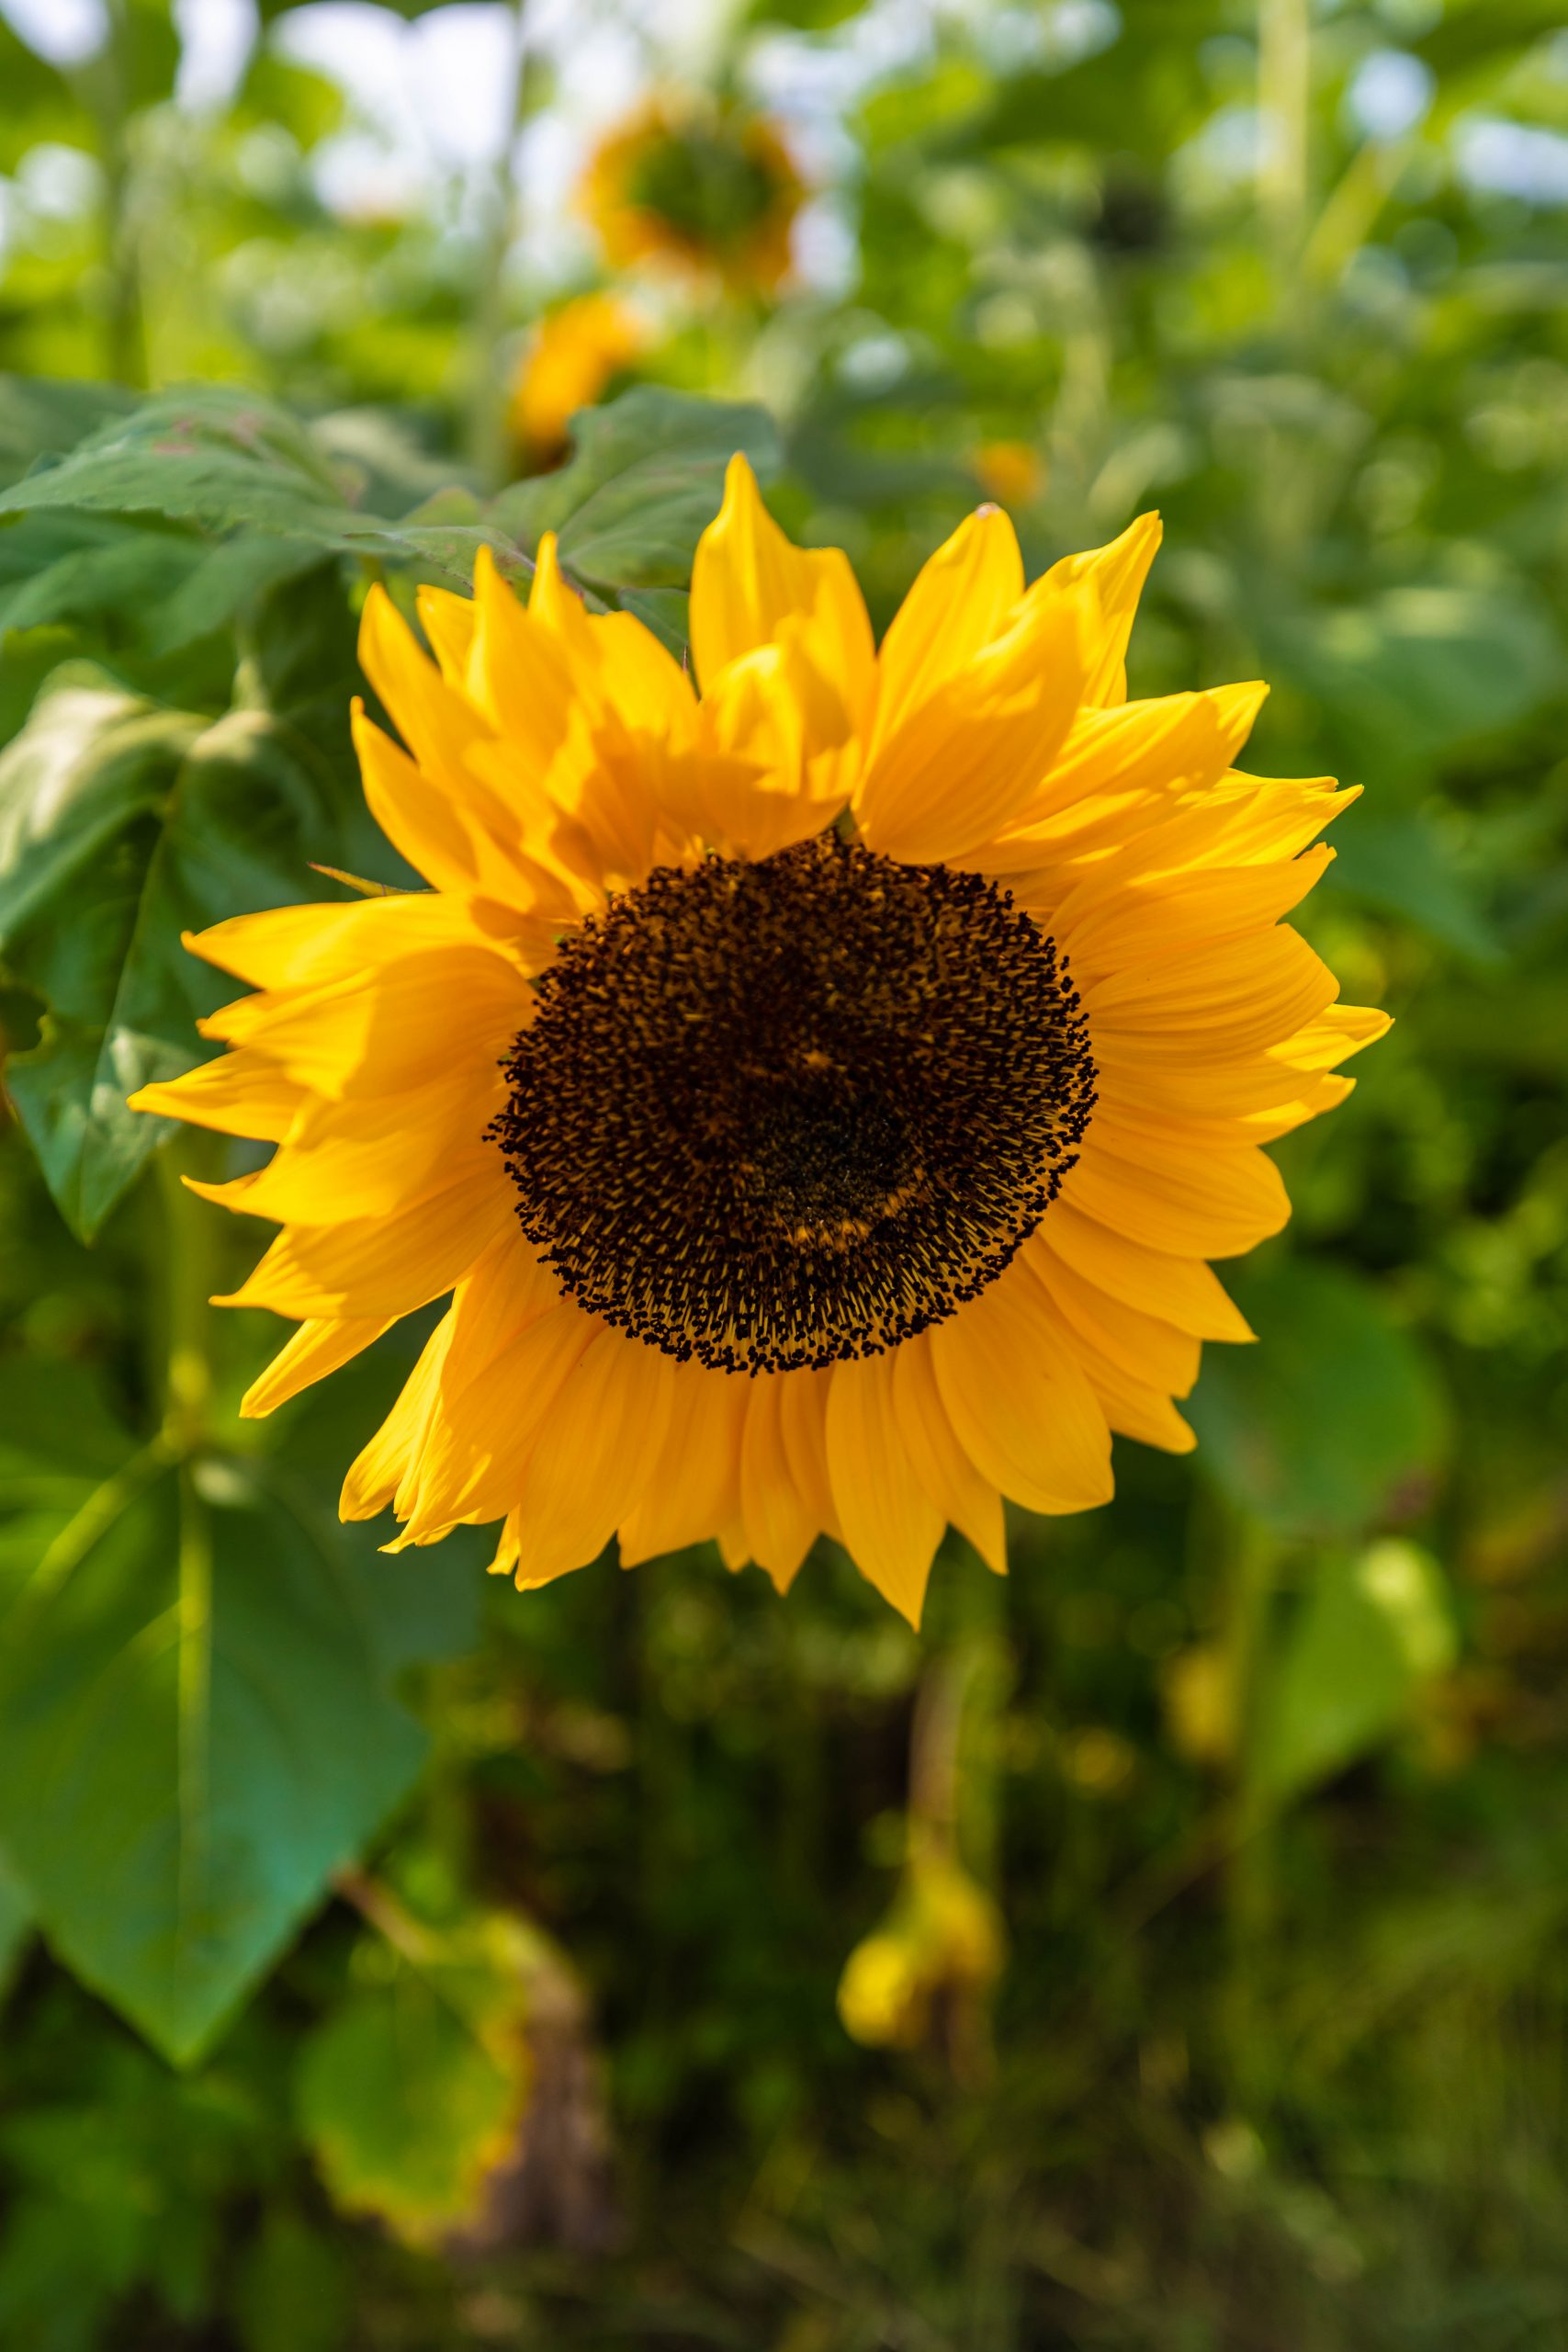 Sunflowers at Almar's Organic Apple Orchard Farm Our Apple Orchard Harvest Apple Picking in Fall in Michigan Midwest Fall Itinerary by Annie Fairfax